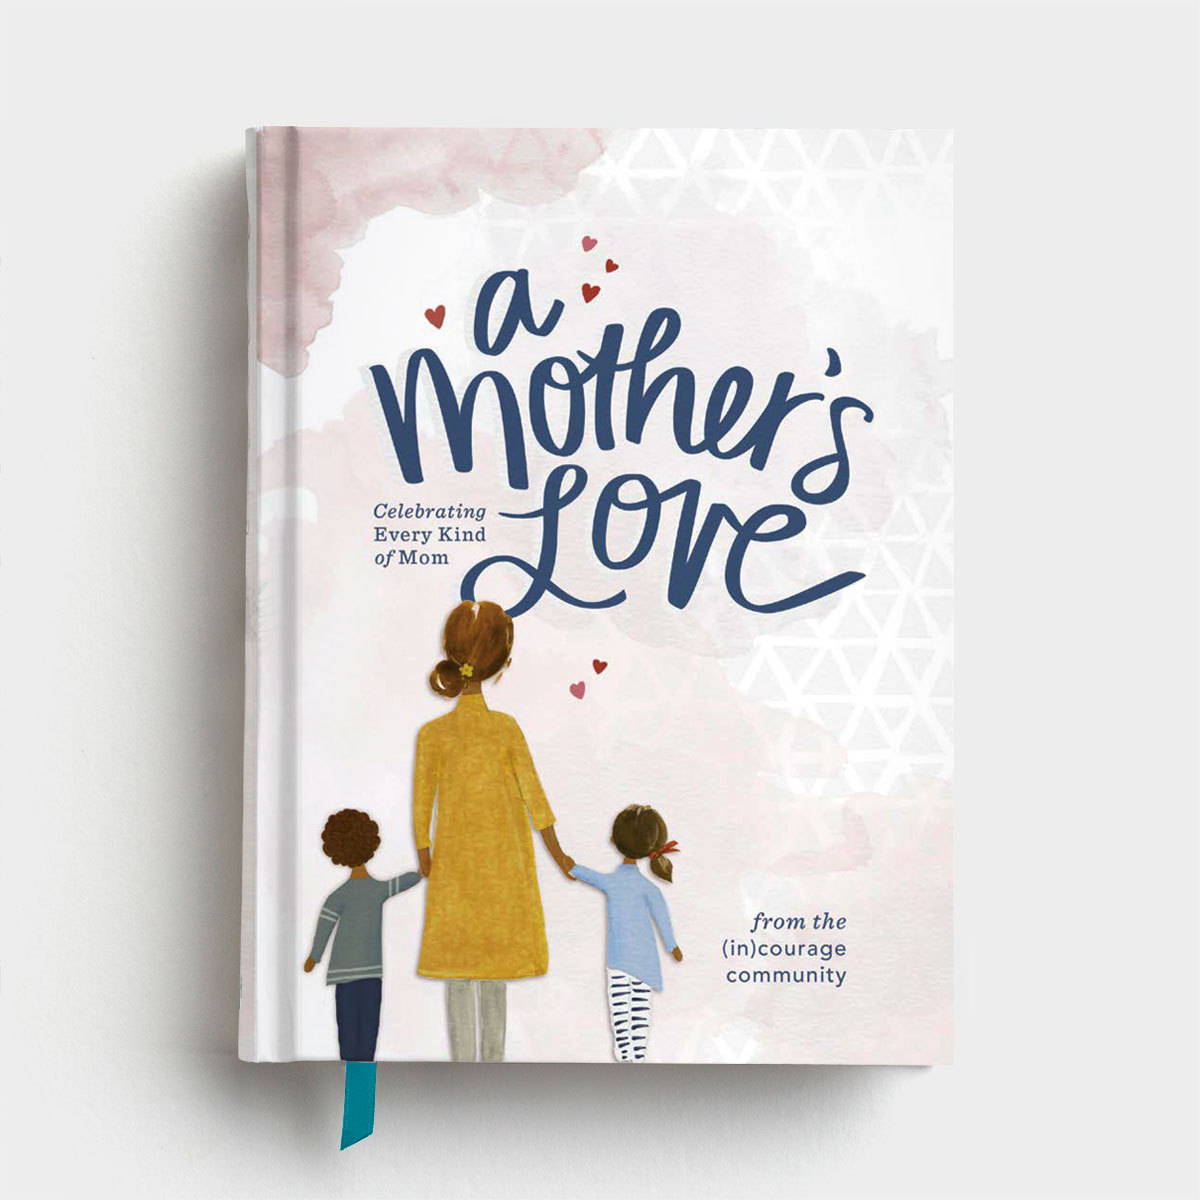 (in)courage – A Mother's Love – Stories, Devotions, and Scripture Celebrating Every Kind of Mom